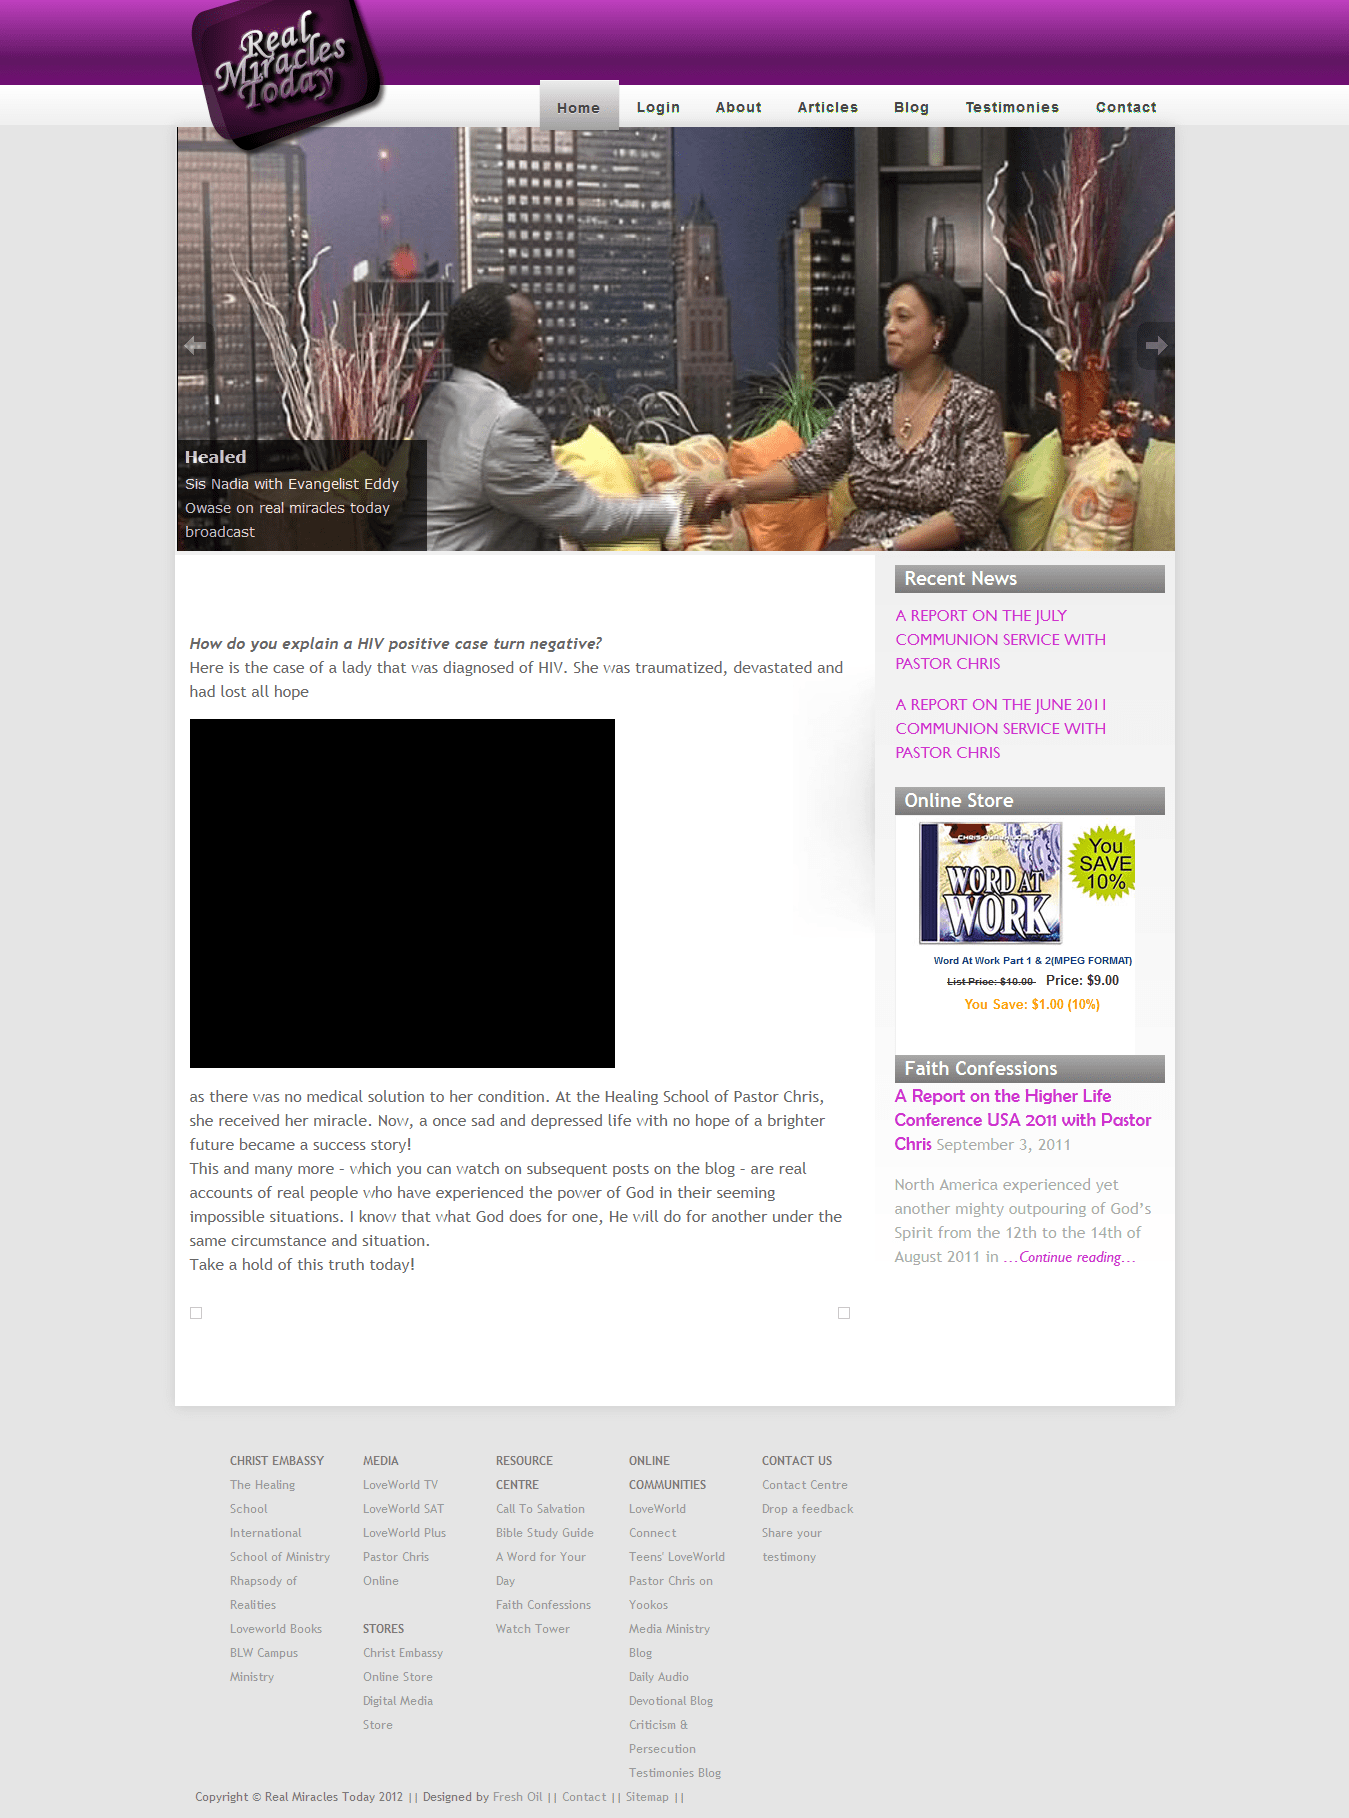 Portfolio of a Web Designer in Nigeria || Frank Waive Jr